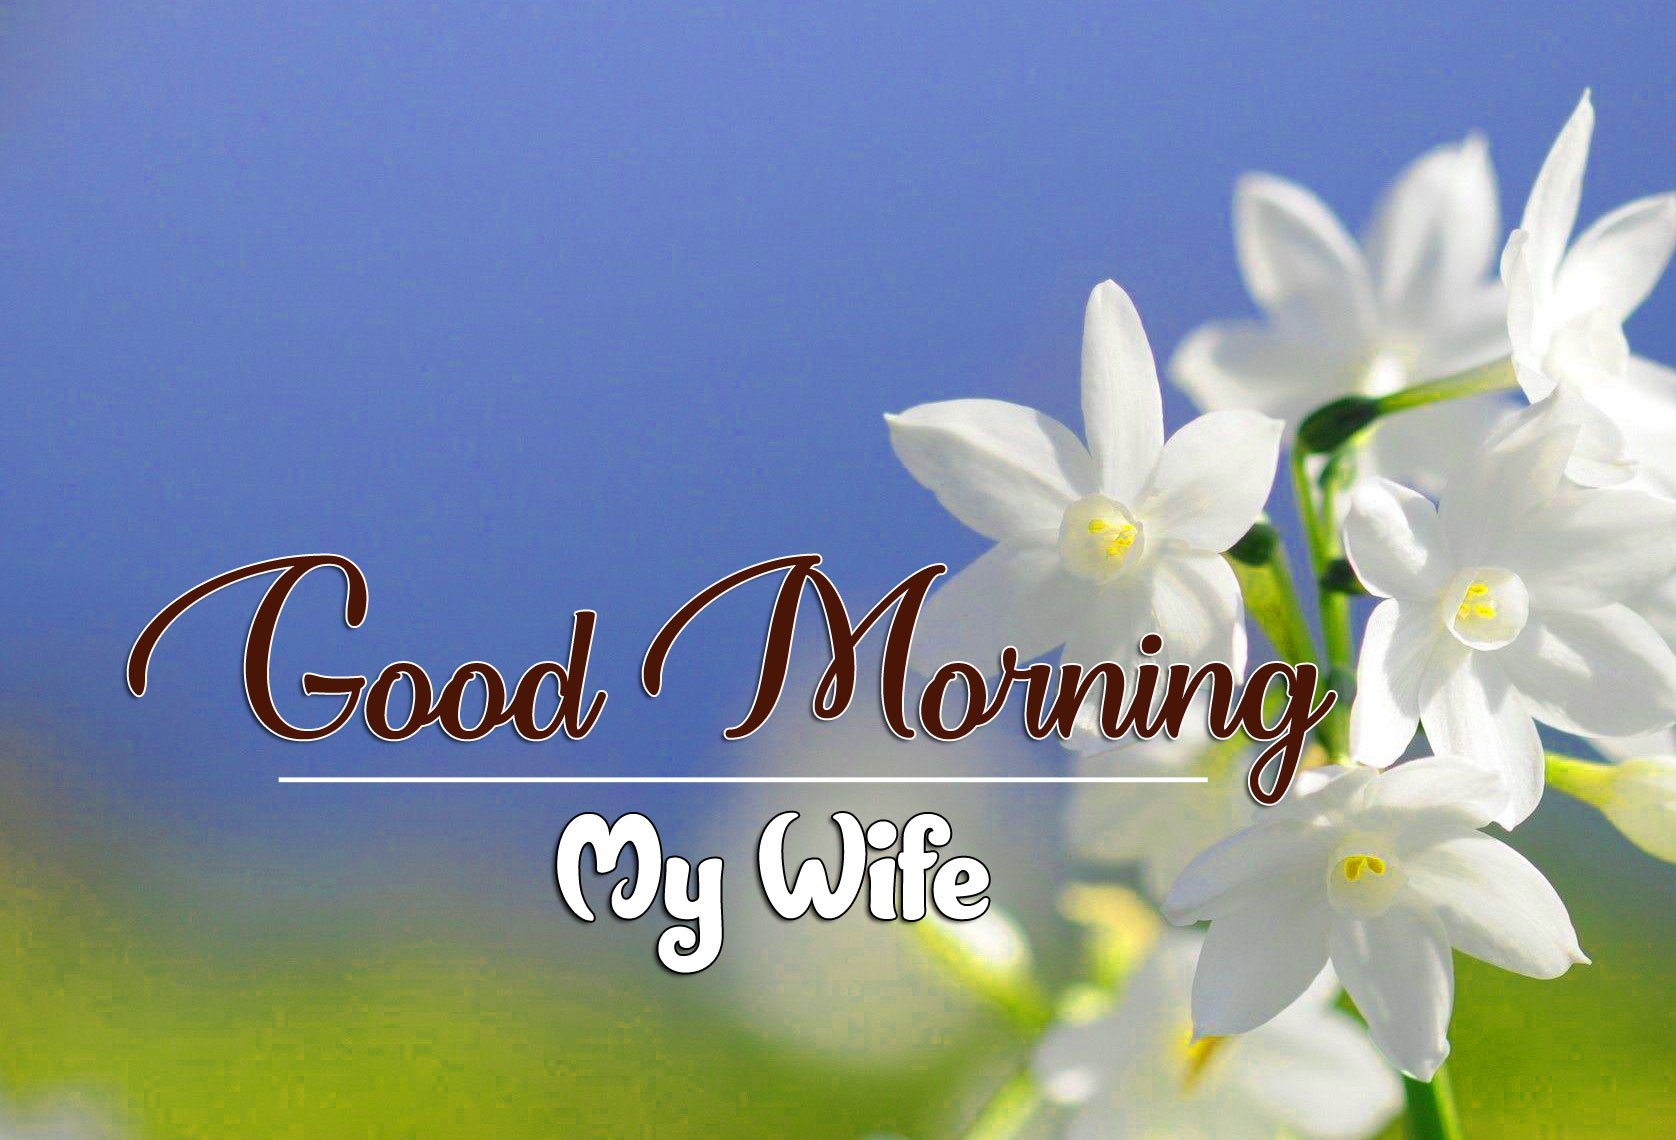 Romantic Good Morning Wallpaper Photo